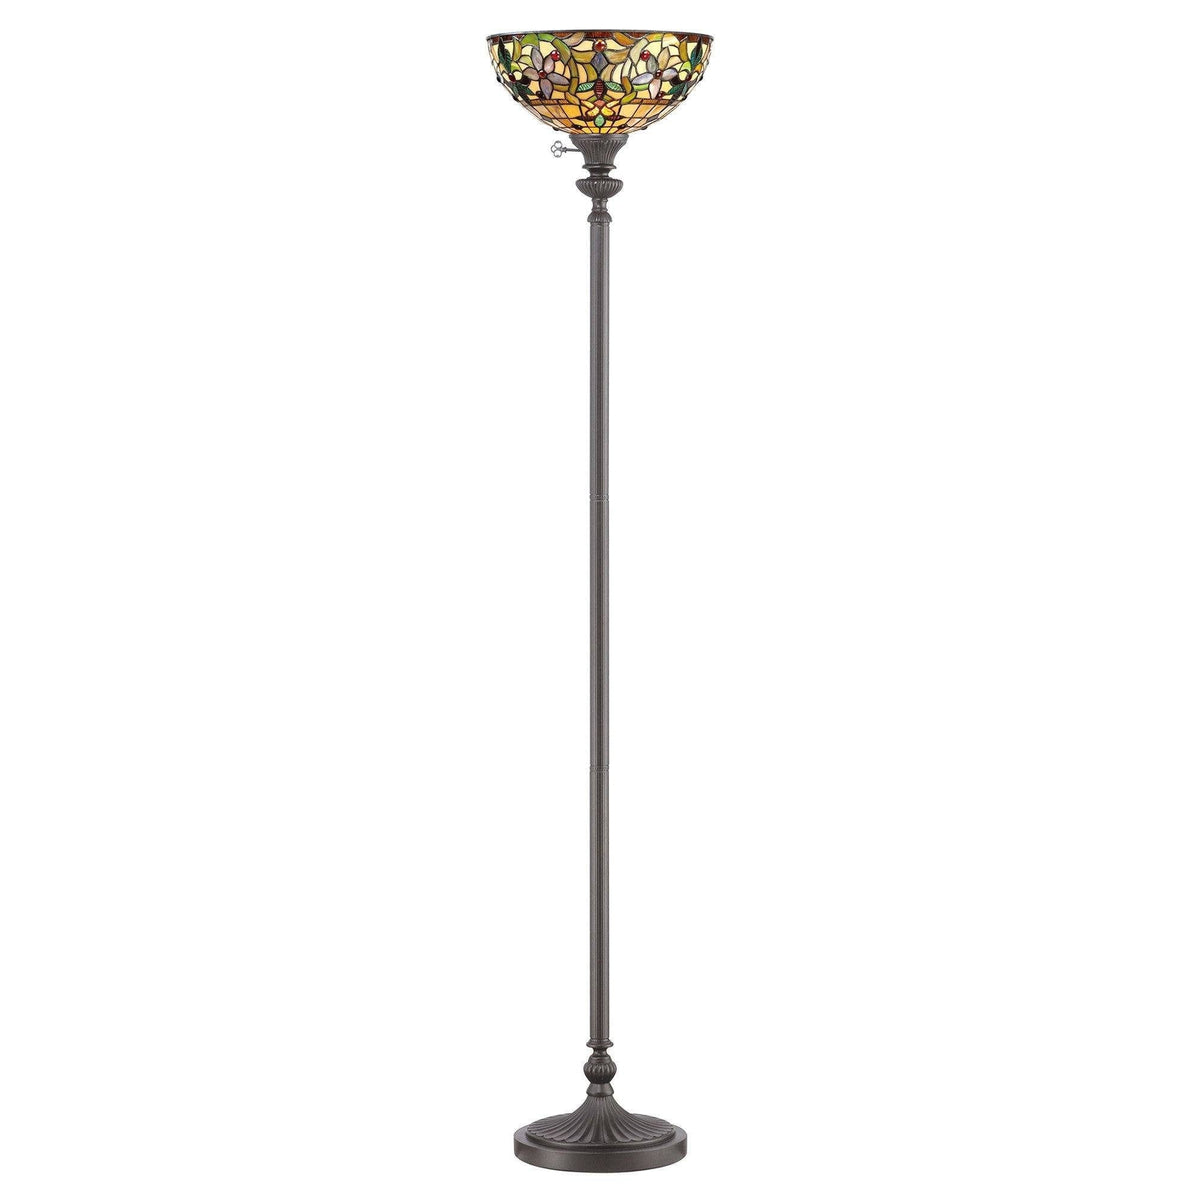 Tiffany Floor Lamps - Quoizel Tiffany Kami Floor Lamp QZ/KAMI/UL